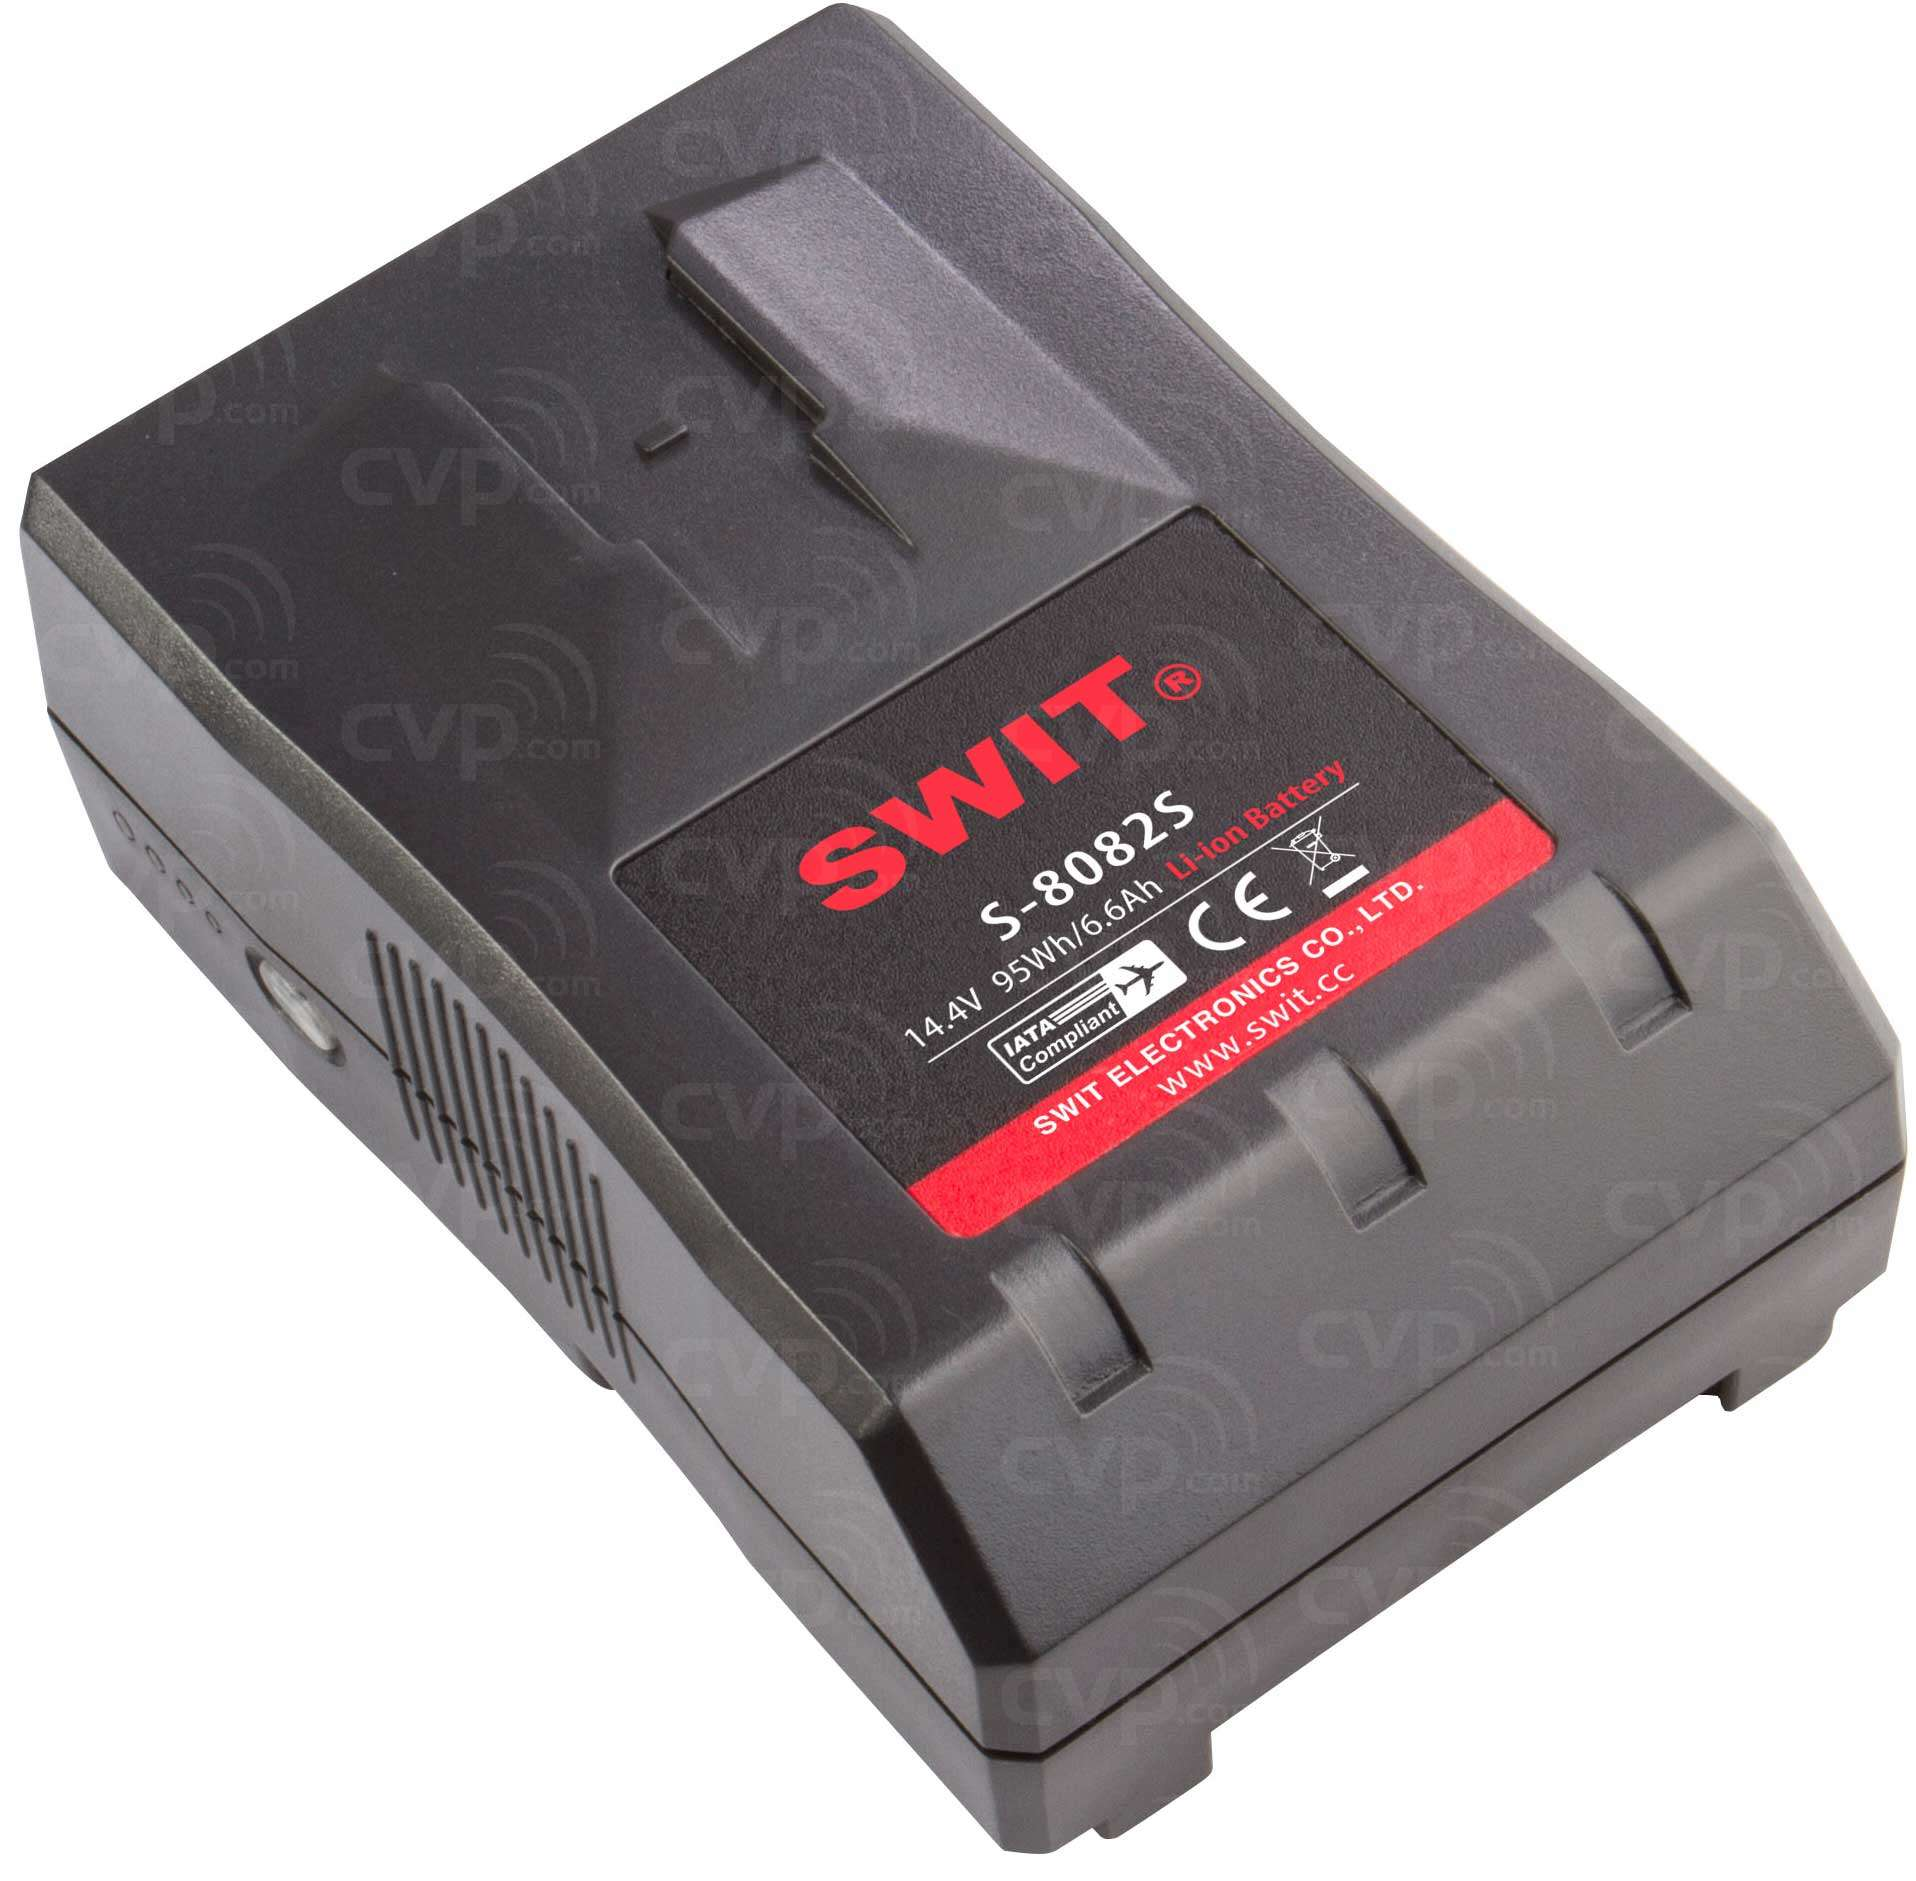 Swit Electronics S-8082S (S8082S) V-Mount Camera Battery with D-TAP (